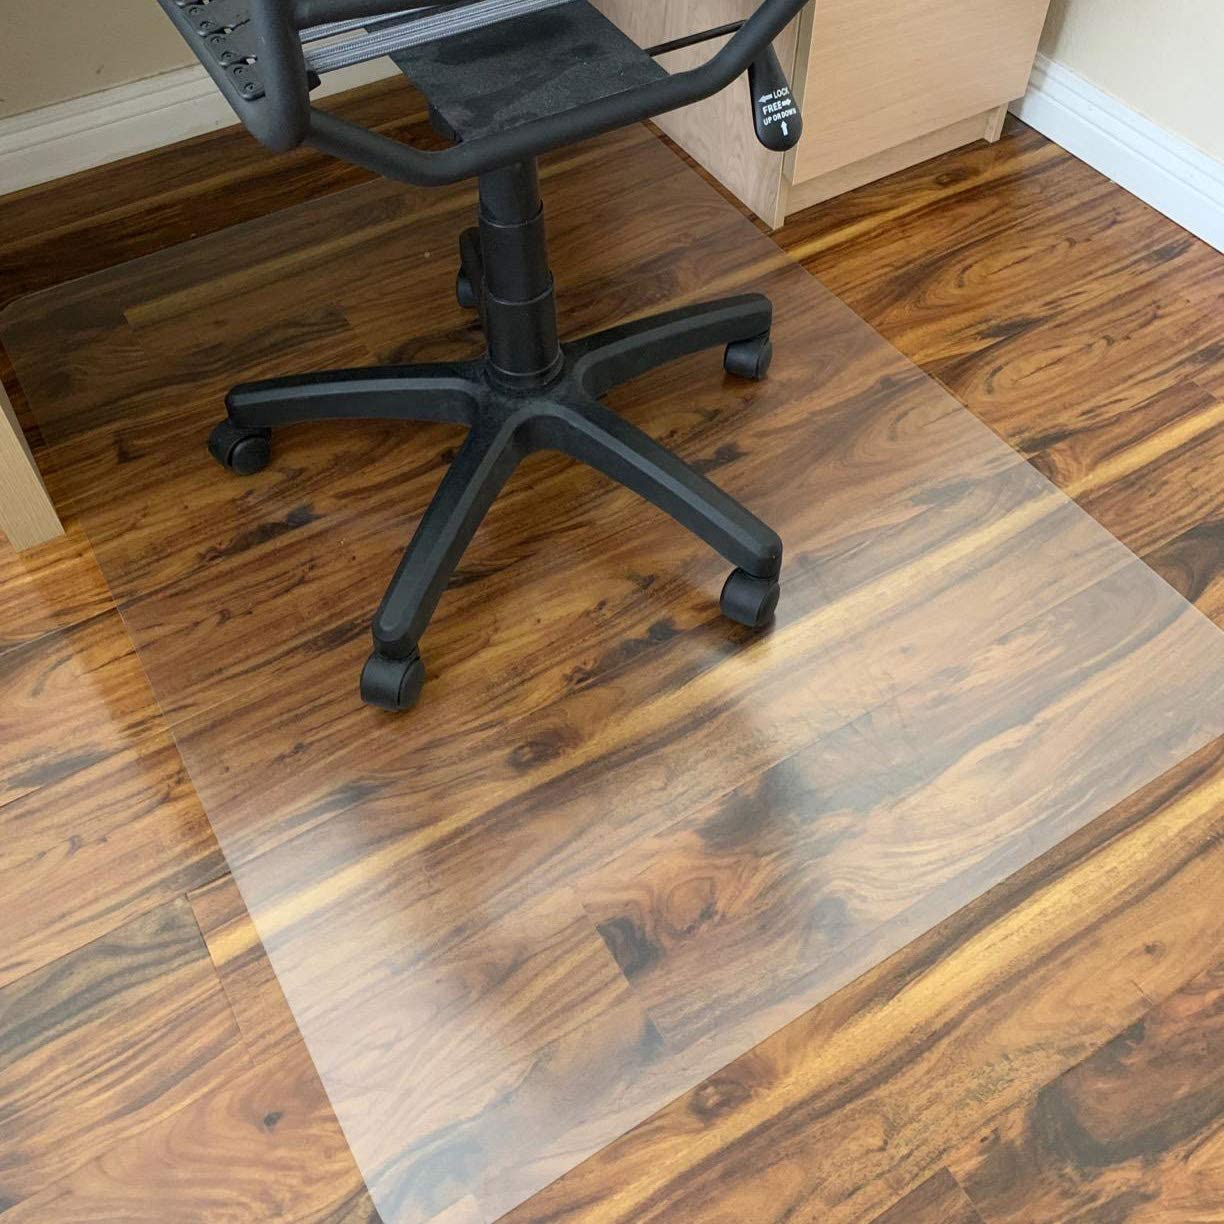 Polycarbonate Office Chair Mat for Hardwood Floor, Floor Mat for Office Chair (Rolling Chairs), Desk Mat & Office Mat for Hardwood Floor, Only for Hardwood Floor, Immediately Flat Out of Box, 36